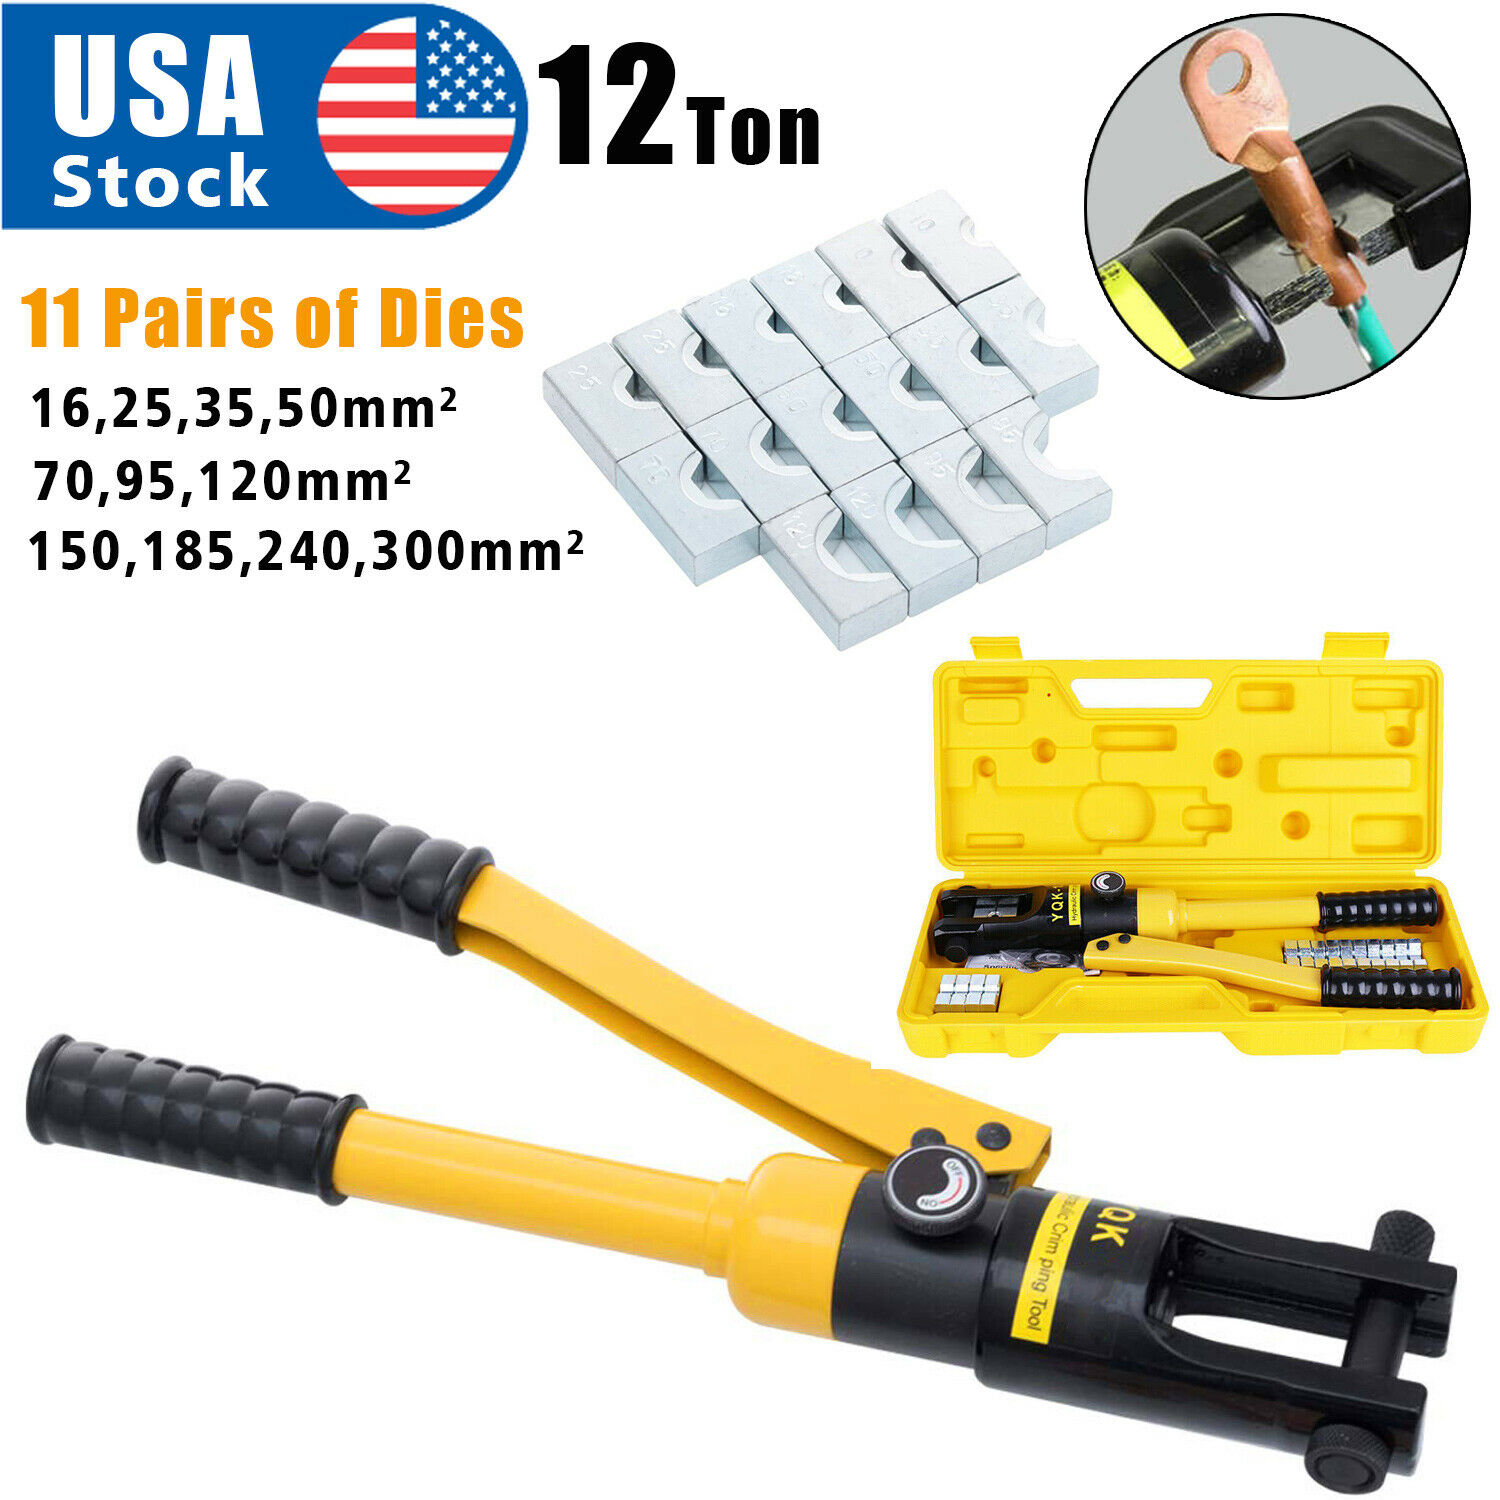 12 Ton Hydraulic Wire Battery Cable Lug Terminal Crimper Crimping Tool 11 Dies Business & Industrial